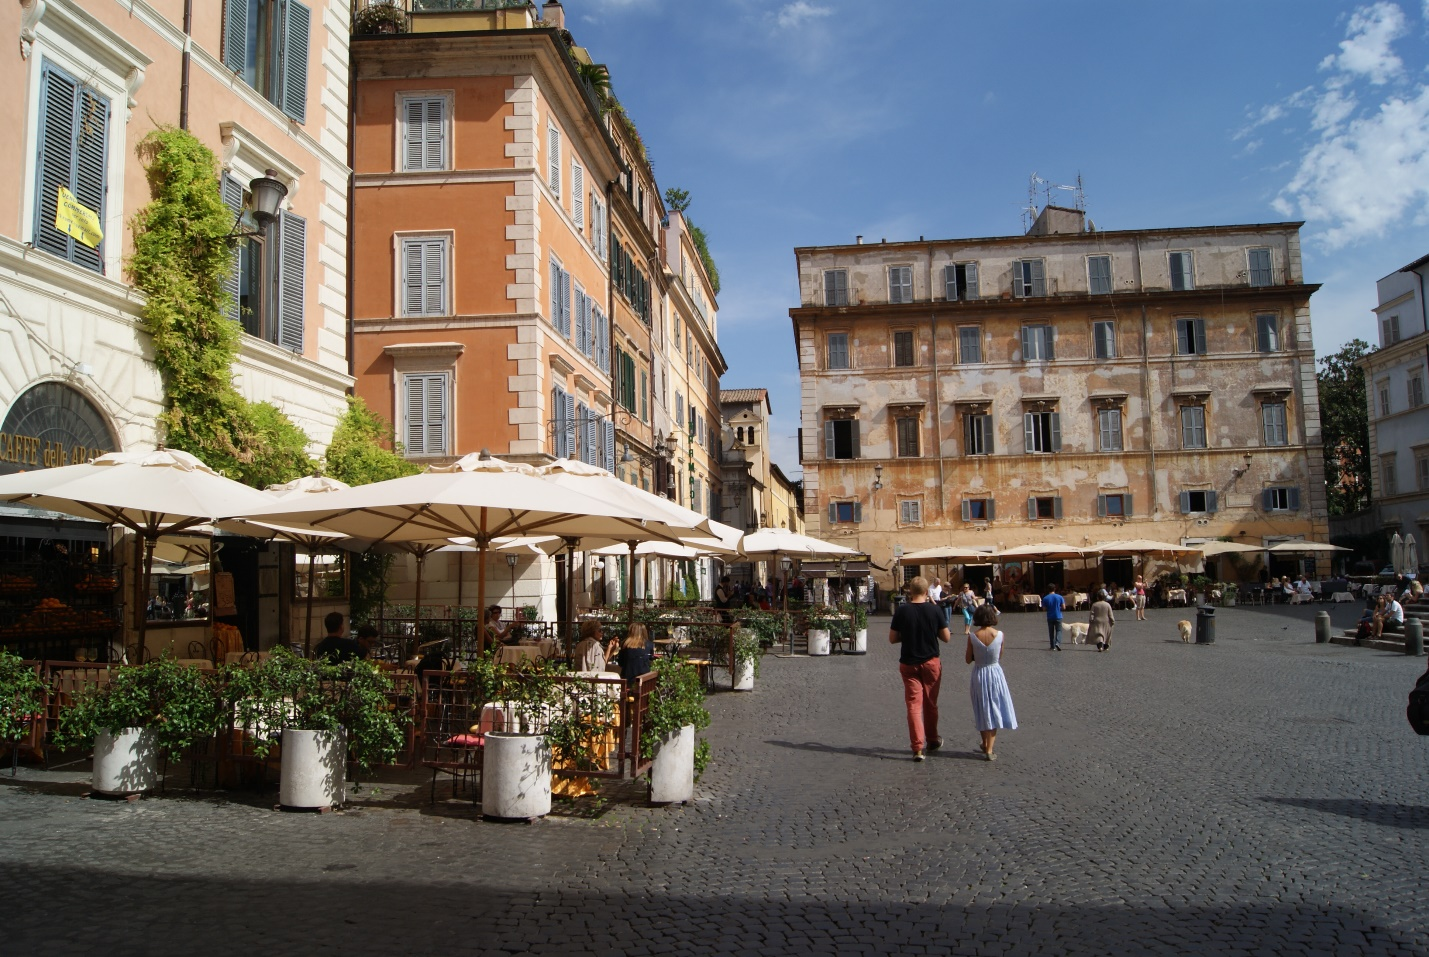 Piazza Santa Maria, in the heart of Trastevere, Trastevere, rome, 4 Ways to Start the Year off Right When you Study in Italy, study abroad in Rome, American universities in Rome, jcu student life, jcu cooking classes